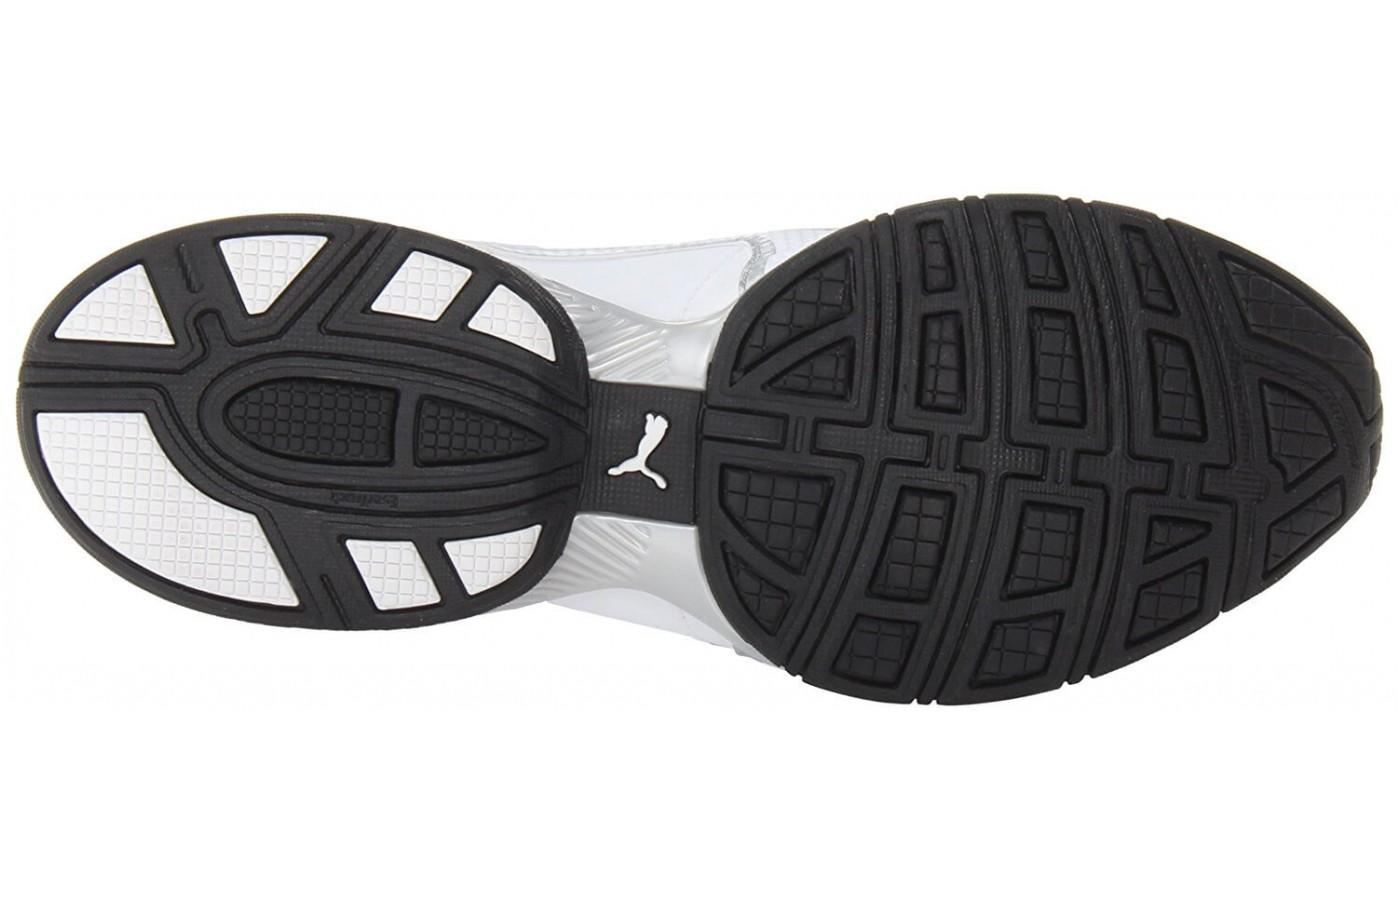 The outsole provides added traction that makes the shoe perfect for slippery conditions